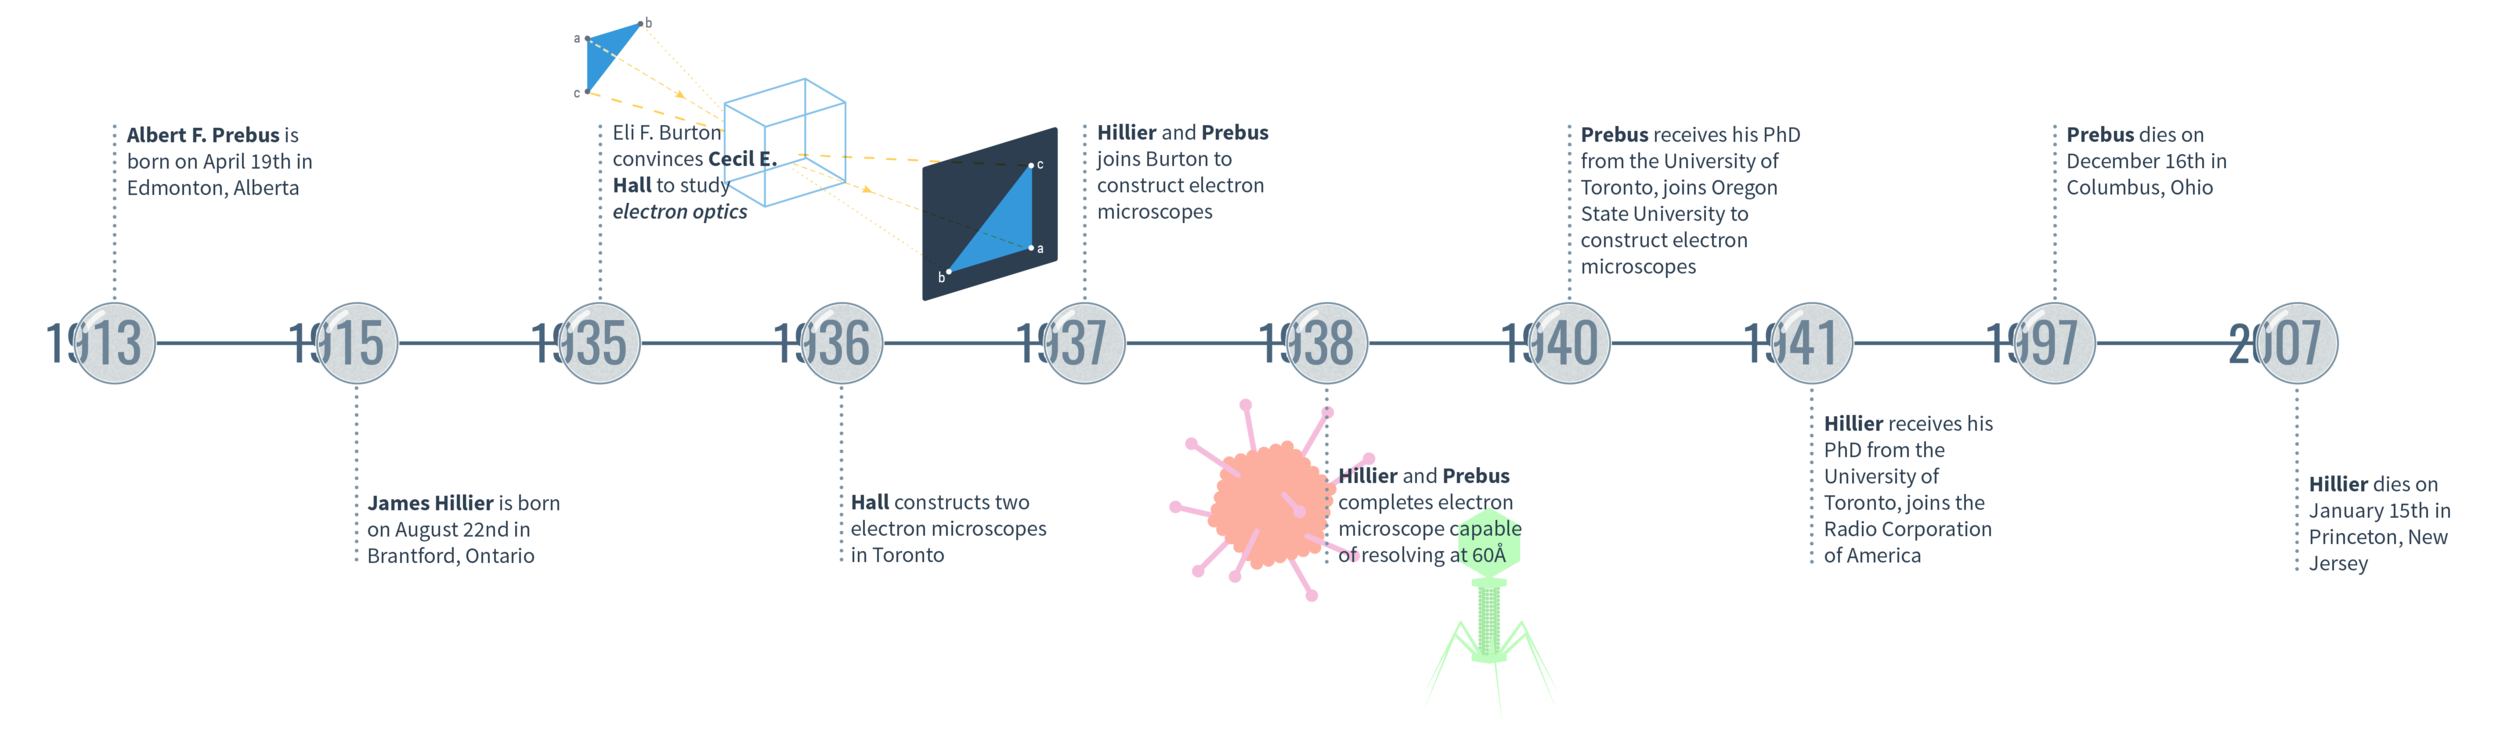 Figure 4. A timeline of significant events in electron microscopy development with an emphasis on Hillier and Prebus.